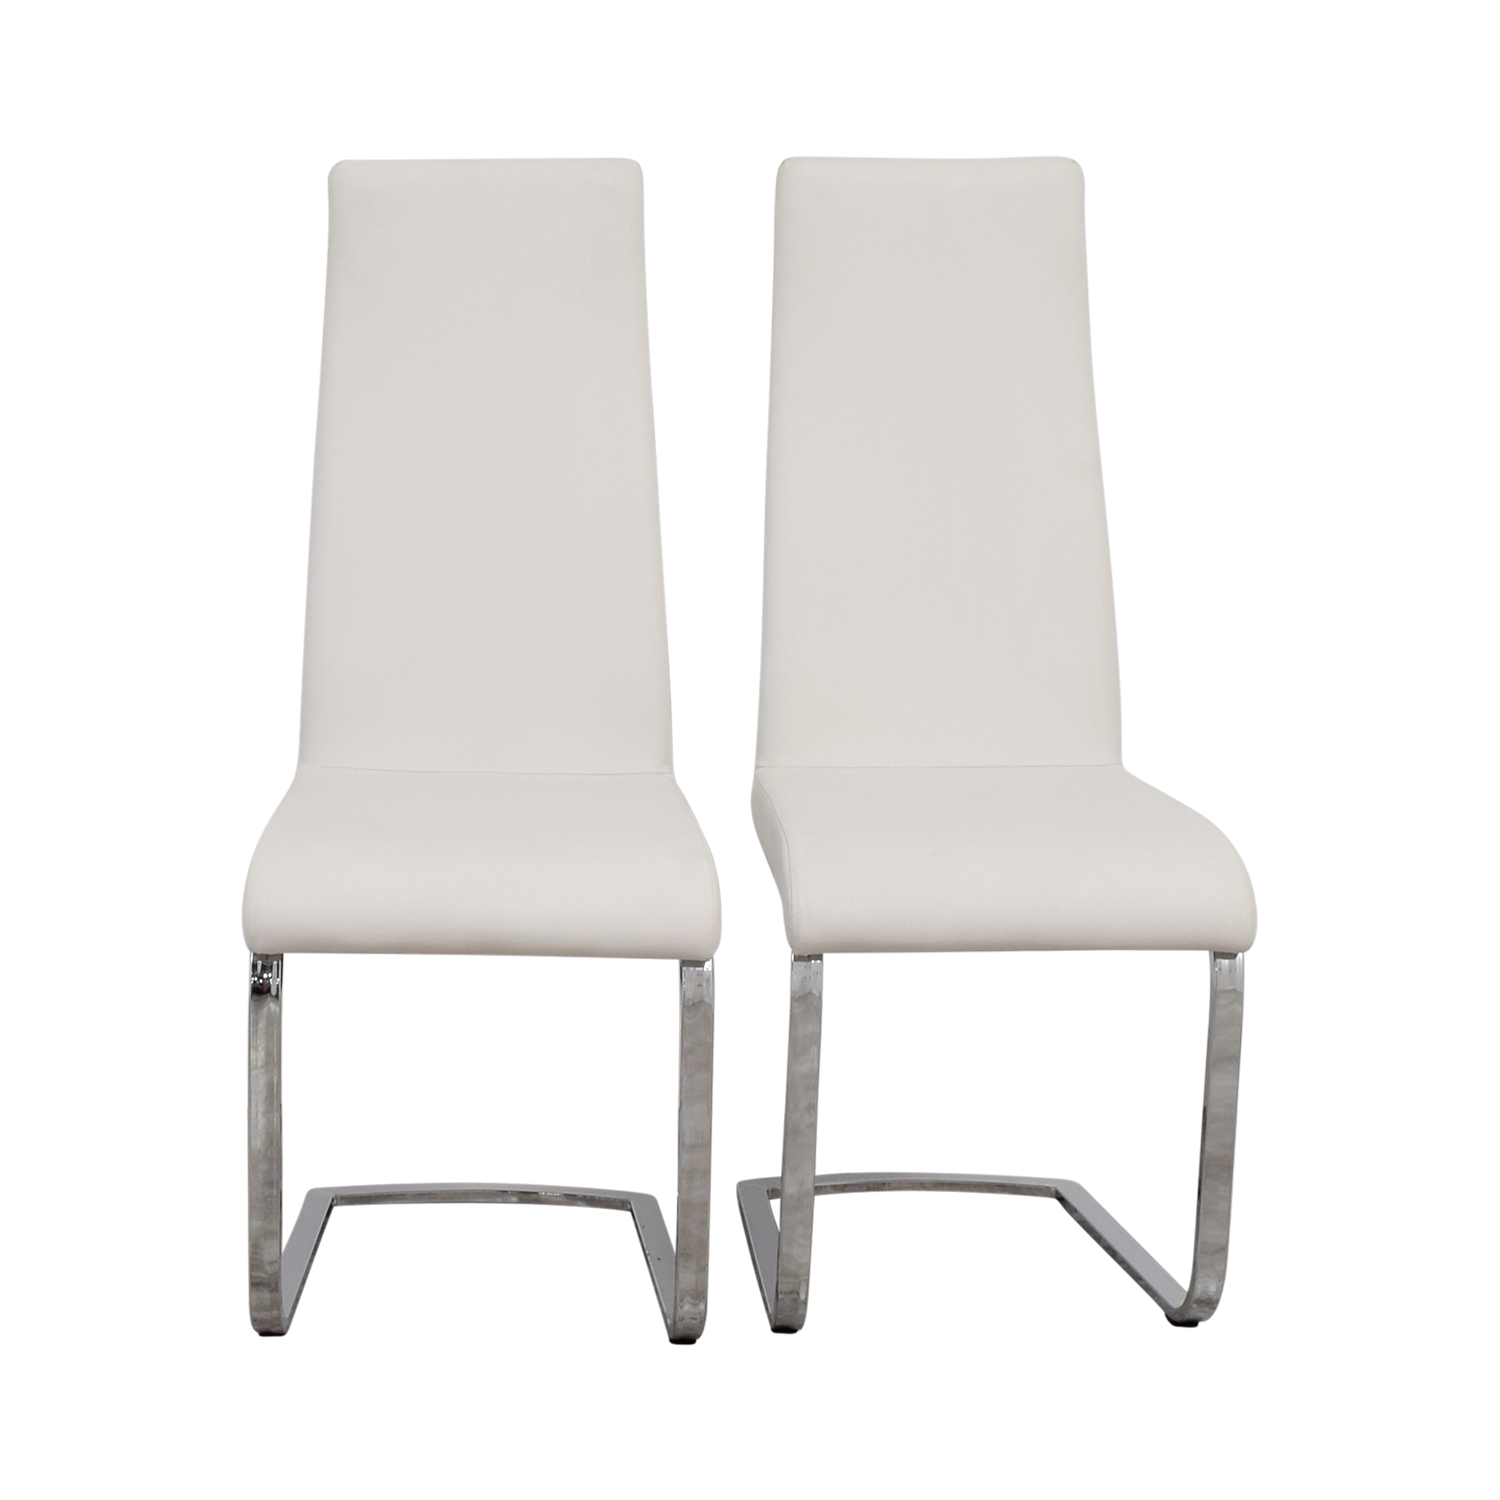 buy Coaster Furniture Breuer Style High Back Dining Chair in White Leatherette Coaster Furniture